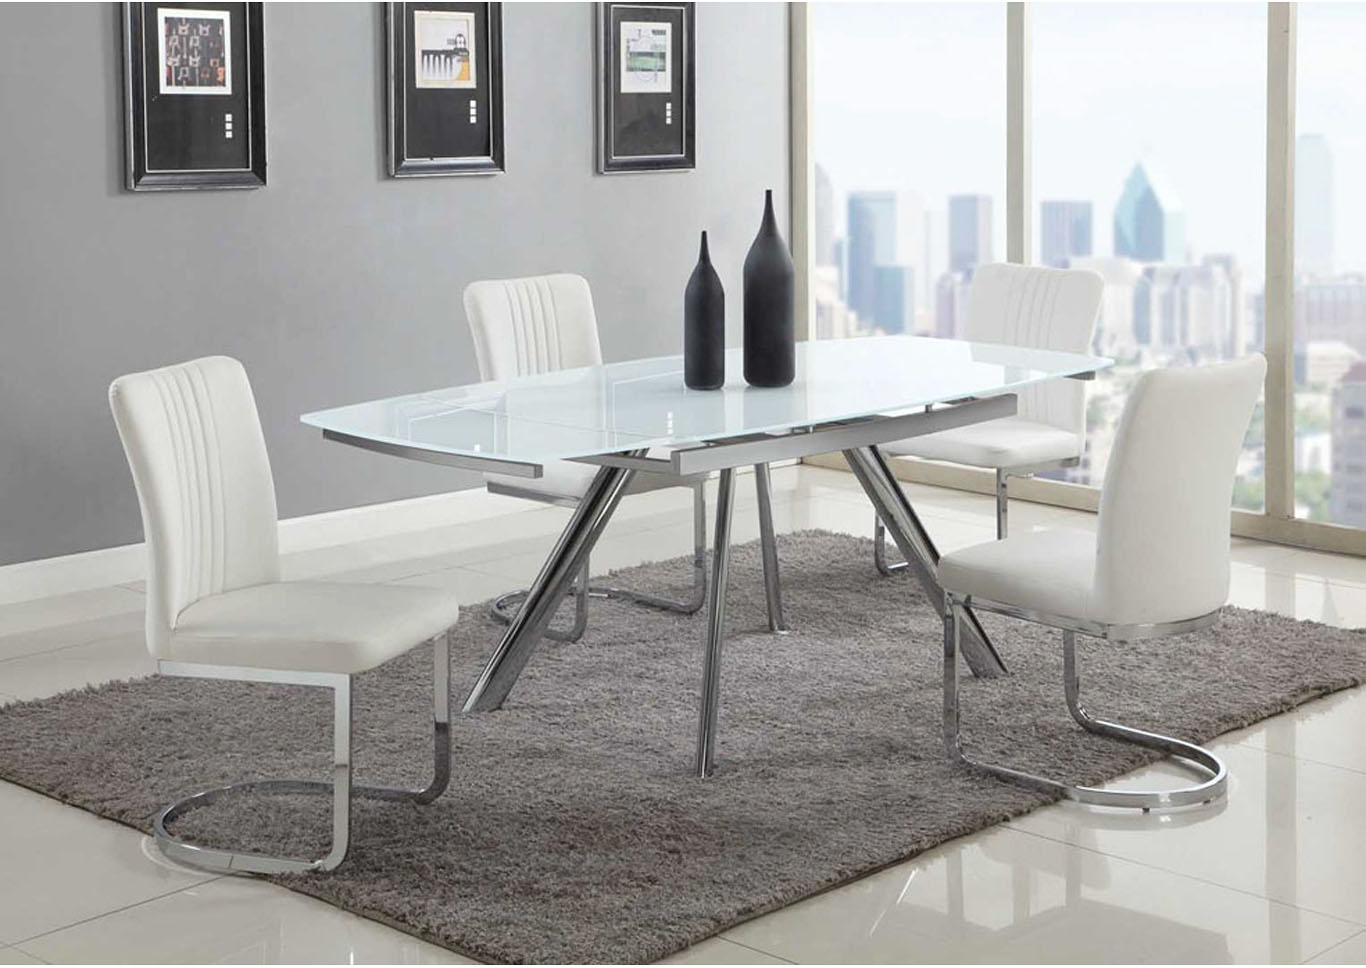 Alina White 5 Piece Dining Room Set,Chintaly Imports